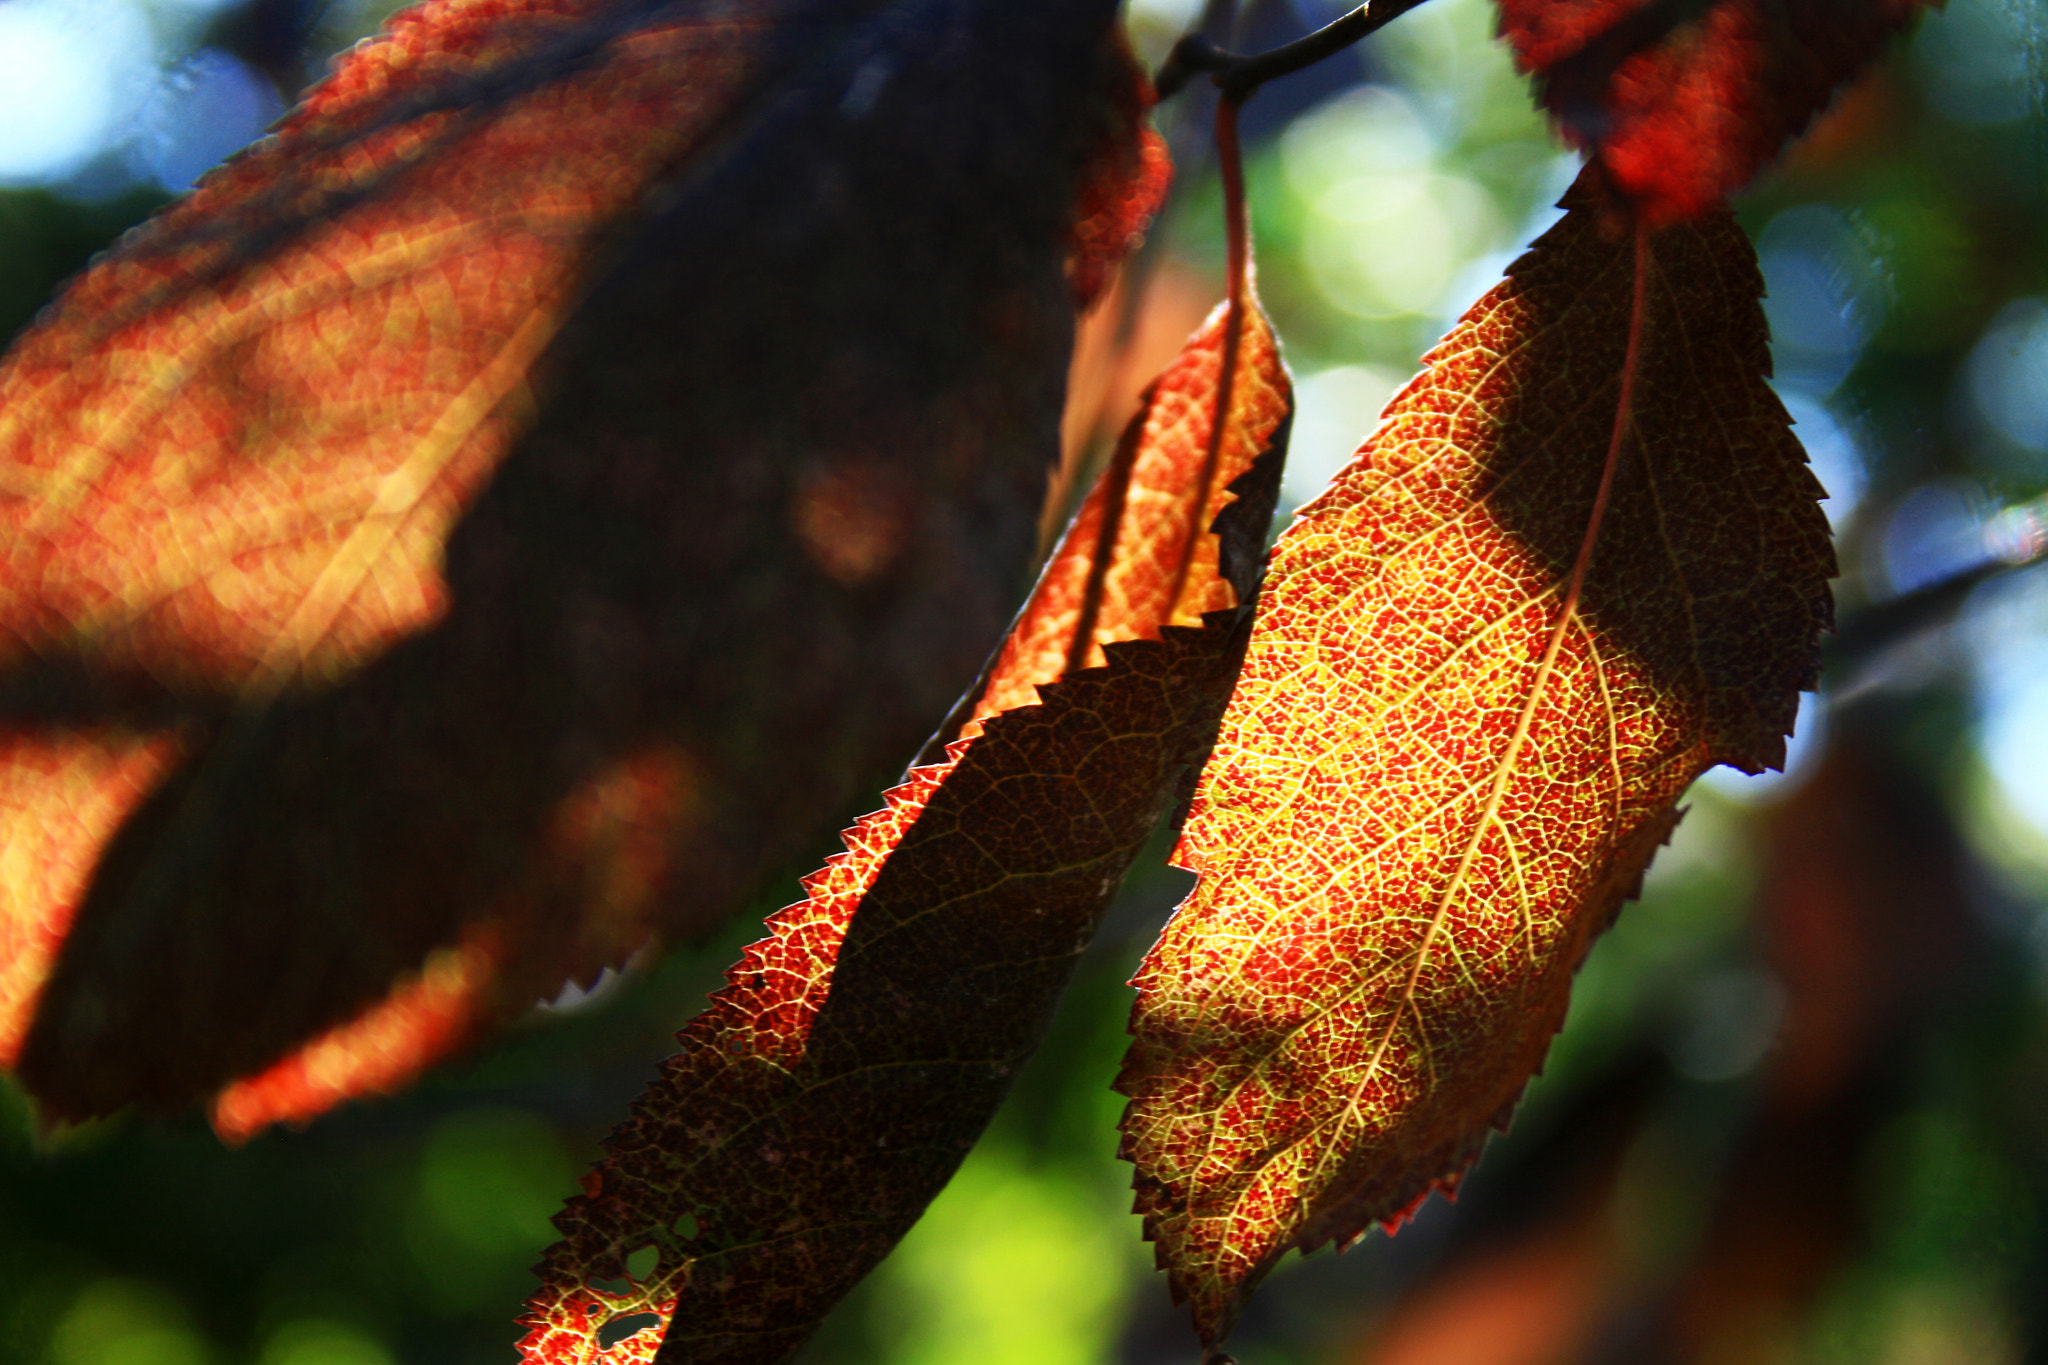 Photograph Spanish leaves by Kristin Segbefia on 500px